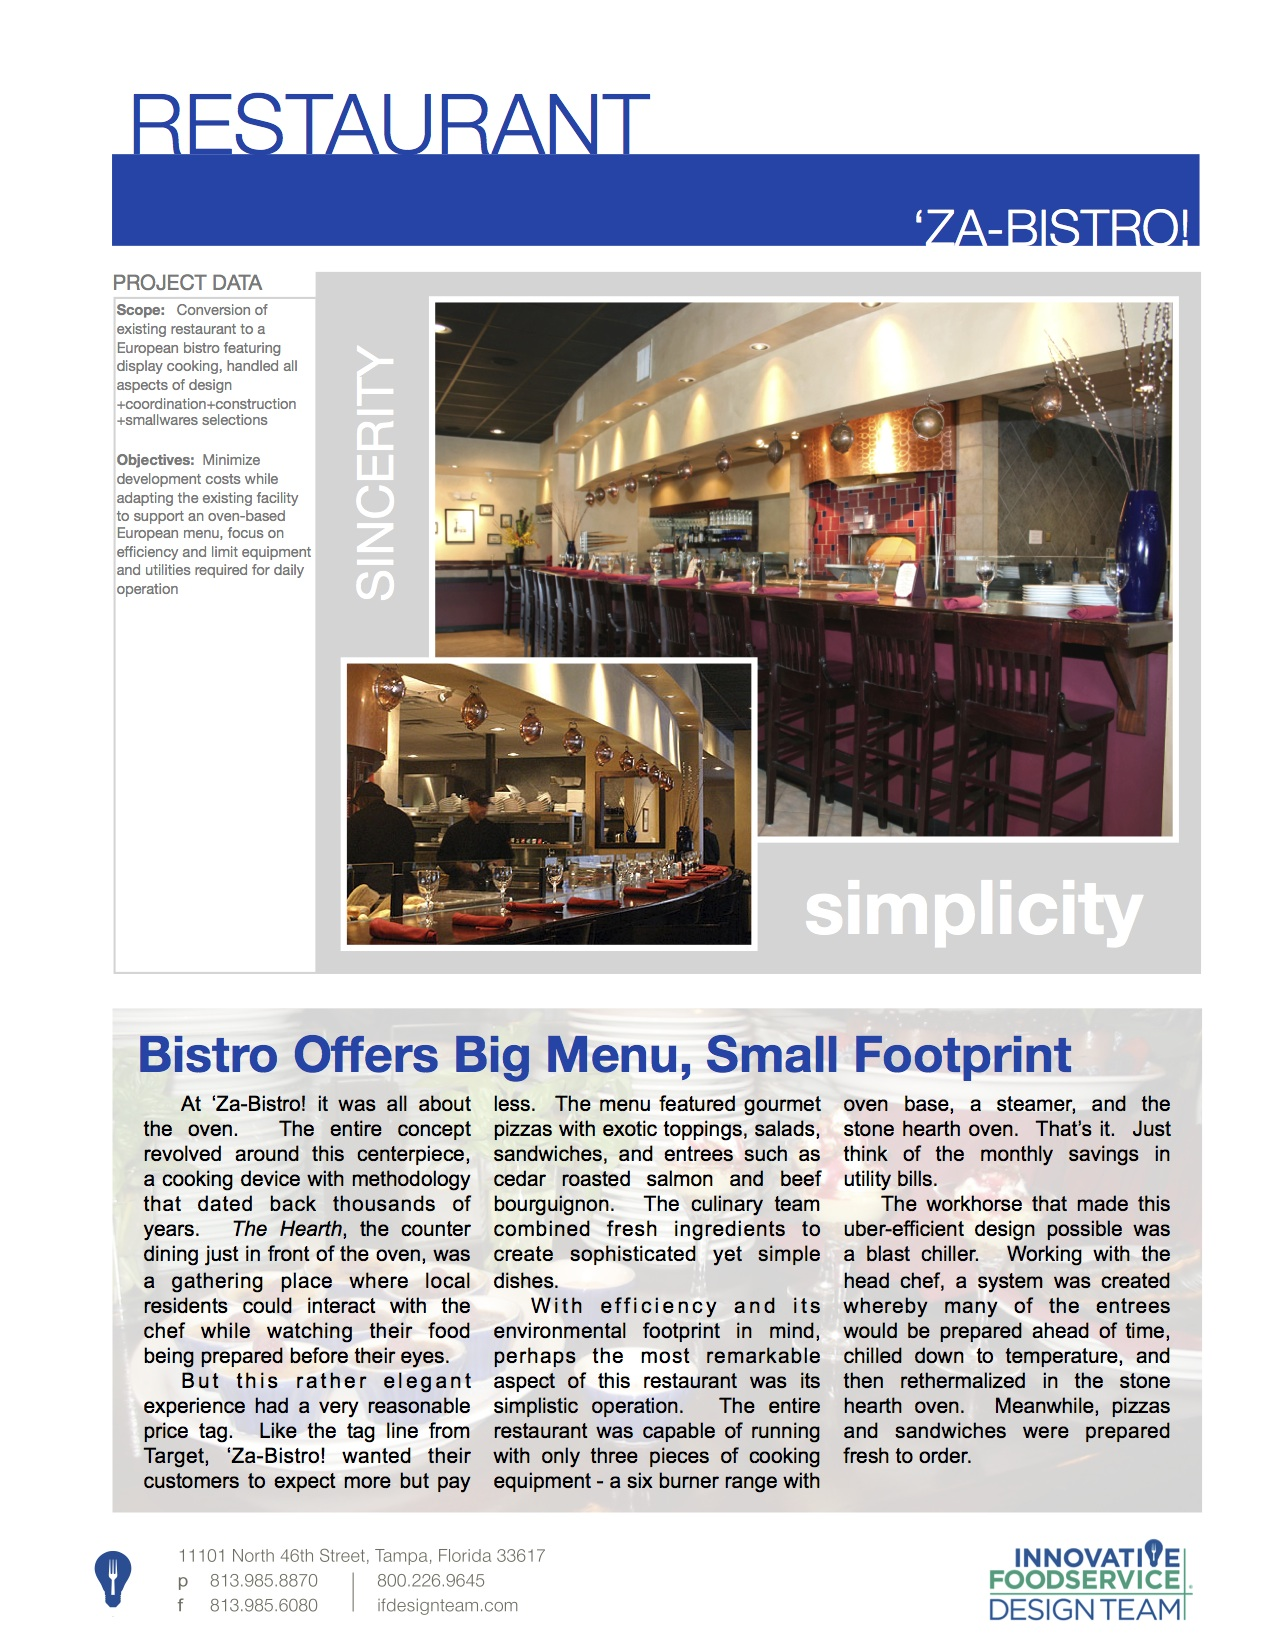 Pizza Cucina Marriott Grande Vista Menu Projects Innovative Foodservice Design Team